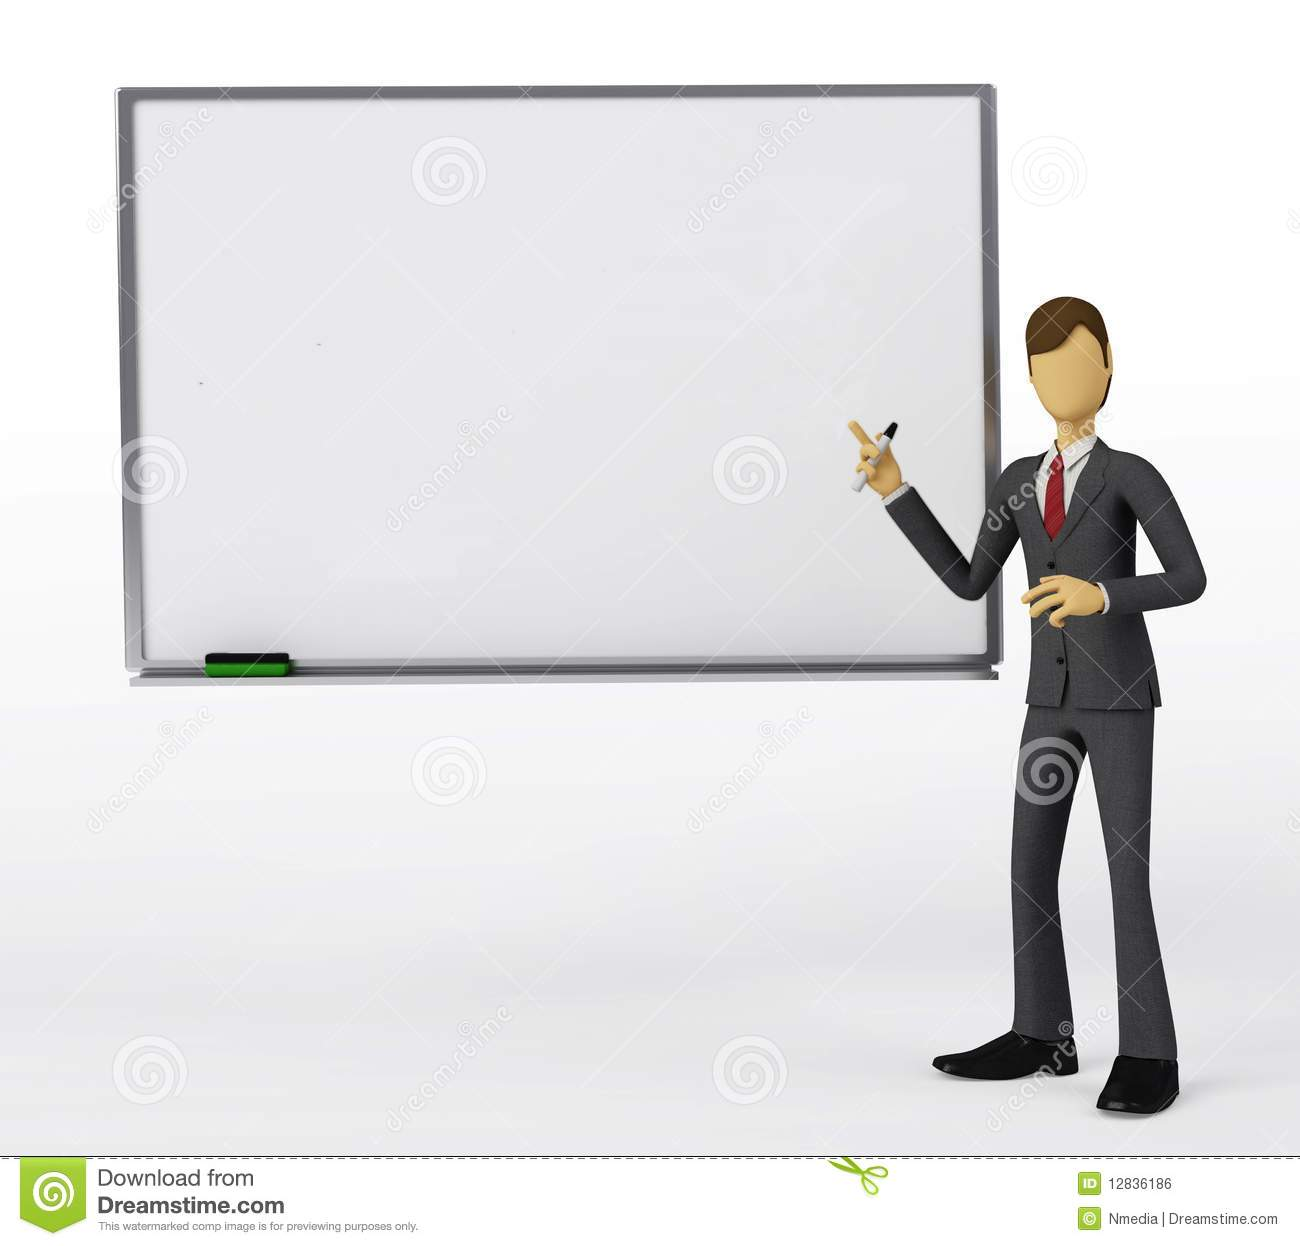 a classroom or presentation room in a modern university or fancy